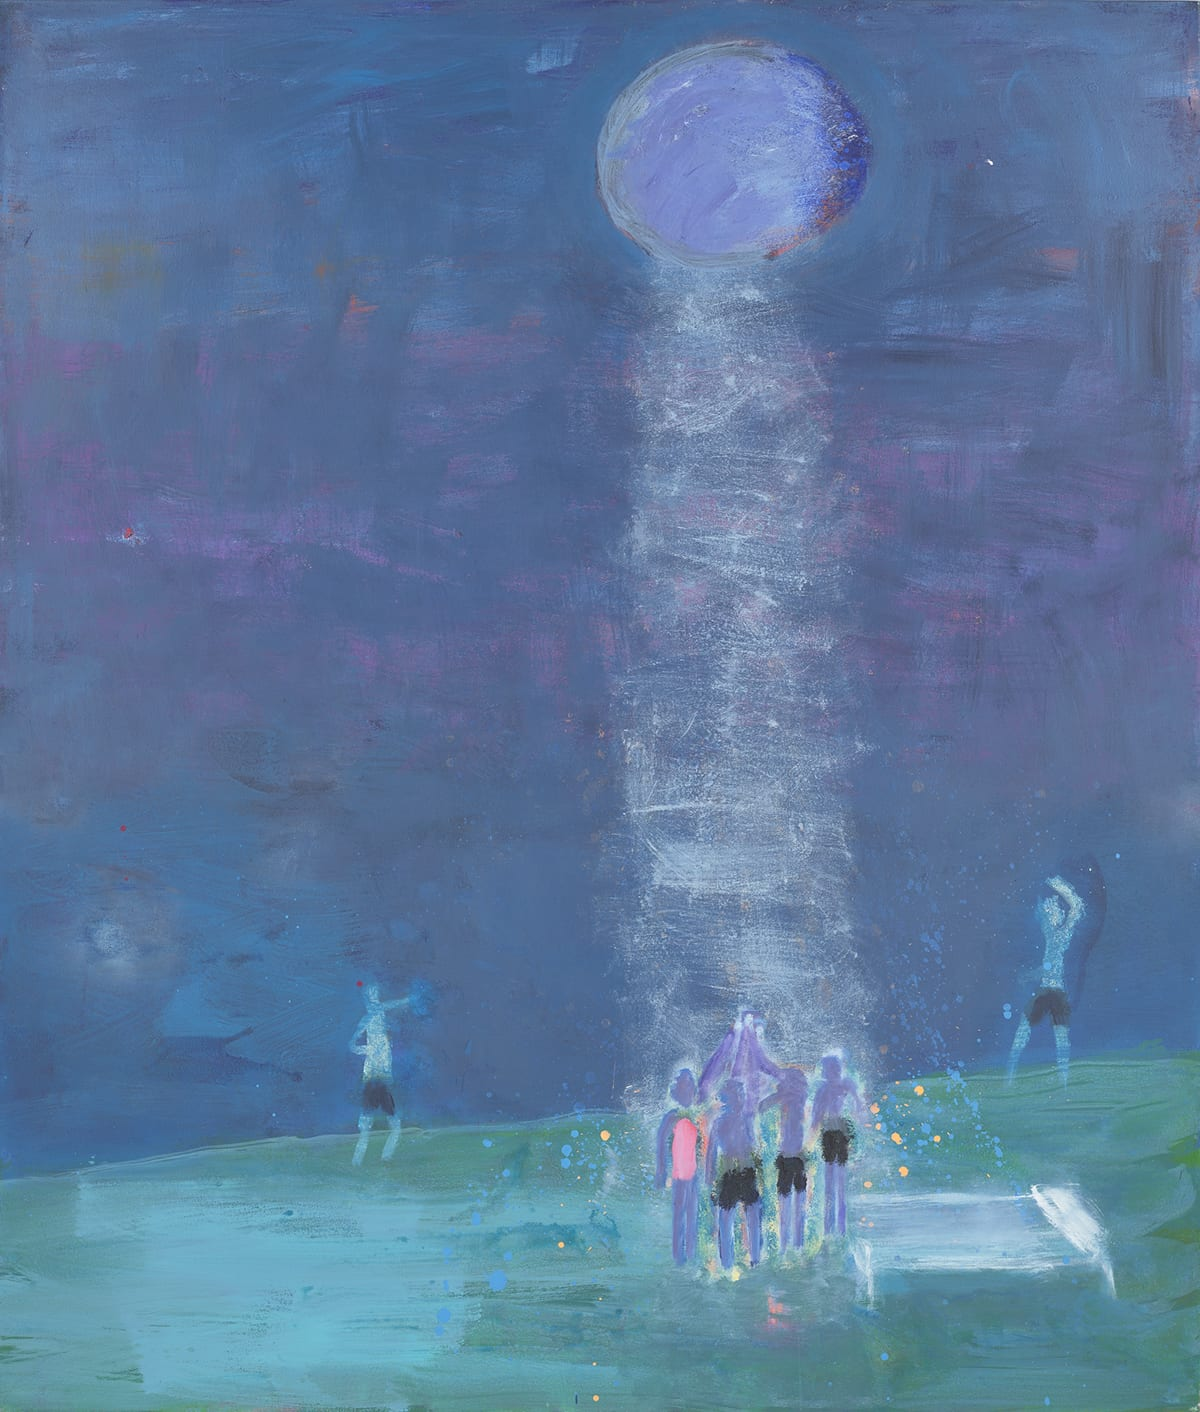 Ritual, Katherine Bradford, 80 x 68 inches, acrylic on canvas. A portrait-oriented painting depicting figures gathered beneath a full moon. This painting is rendered in hues of blues and greens with hints of pinks and purples. At the center top is a round pale blue orb with darker shading on its right edge. A white cone of light depicted in light brushstrokes emanates from the sphere down to the ground, which starts about a fifth from the bottom edge of the painting. Here swimsuit clad figures gather in the light. Three wear black swim trunks and one at left wears a pink one-piece swimsuit. Their arms are stretched upward towards the light and celestial body or moon. A lone figure in black trunks stands at left and another stands at right with their arm over their head. The bodies of the figures are painted in blues and purples. Near the central gathering, tiny orange and bright blue dots are splattered around the group. A horizontal rectangle resembling a bench or bed sits to the right of the grouping. The sky above the figures' heads is various shades of blue daubed and brushed on with pinks and purples bleeding through. They stand on green-blue ground, with brushstrokes visible.